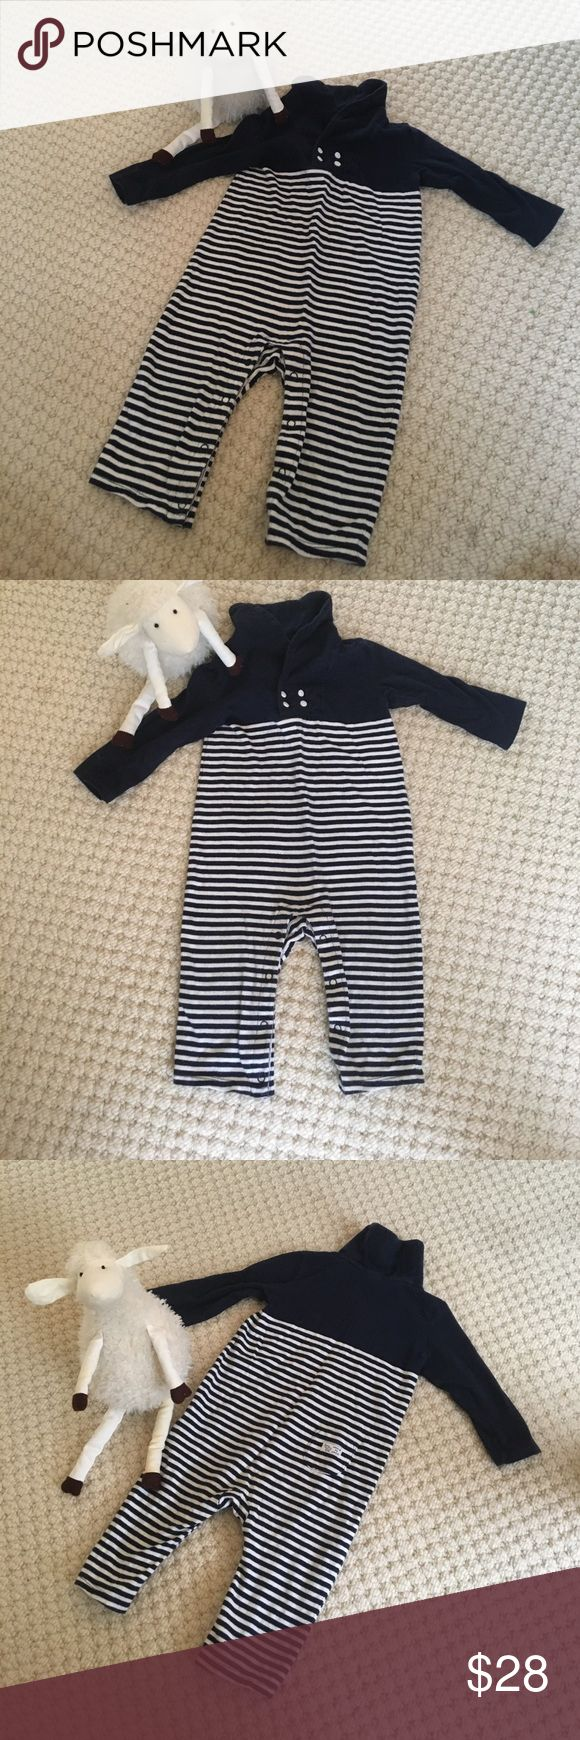 Janie & Jack baby Boy blue striped jumper 6-12m Adorable blue and white striped jumper 6-12m - signs of washing no stains! Janie and Jack One Pieces Bodysuits